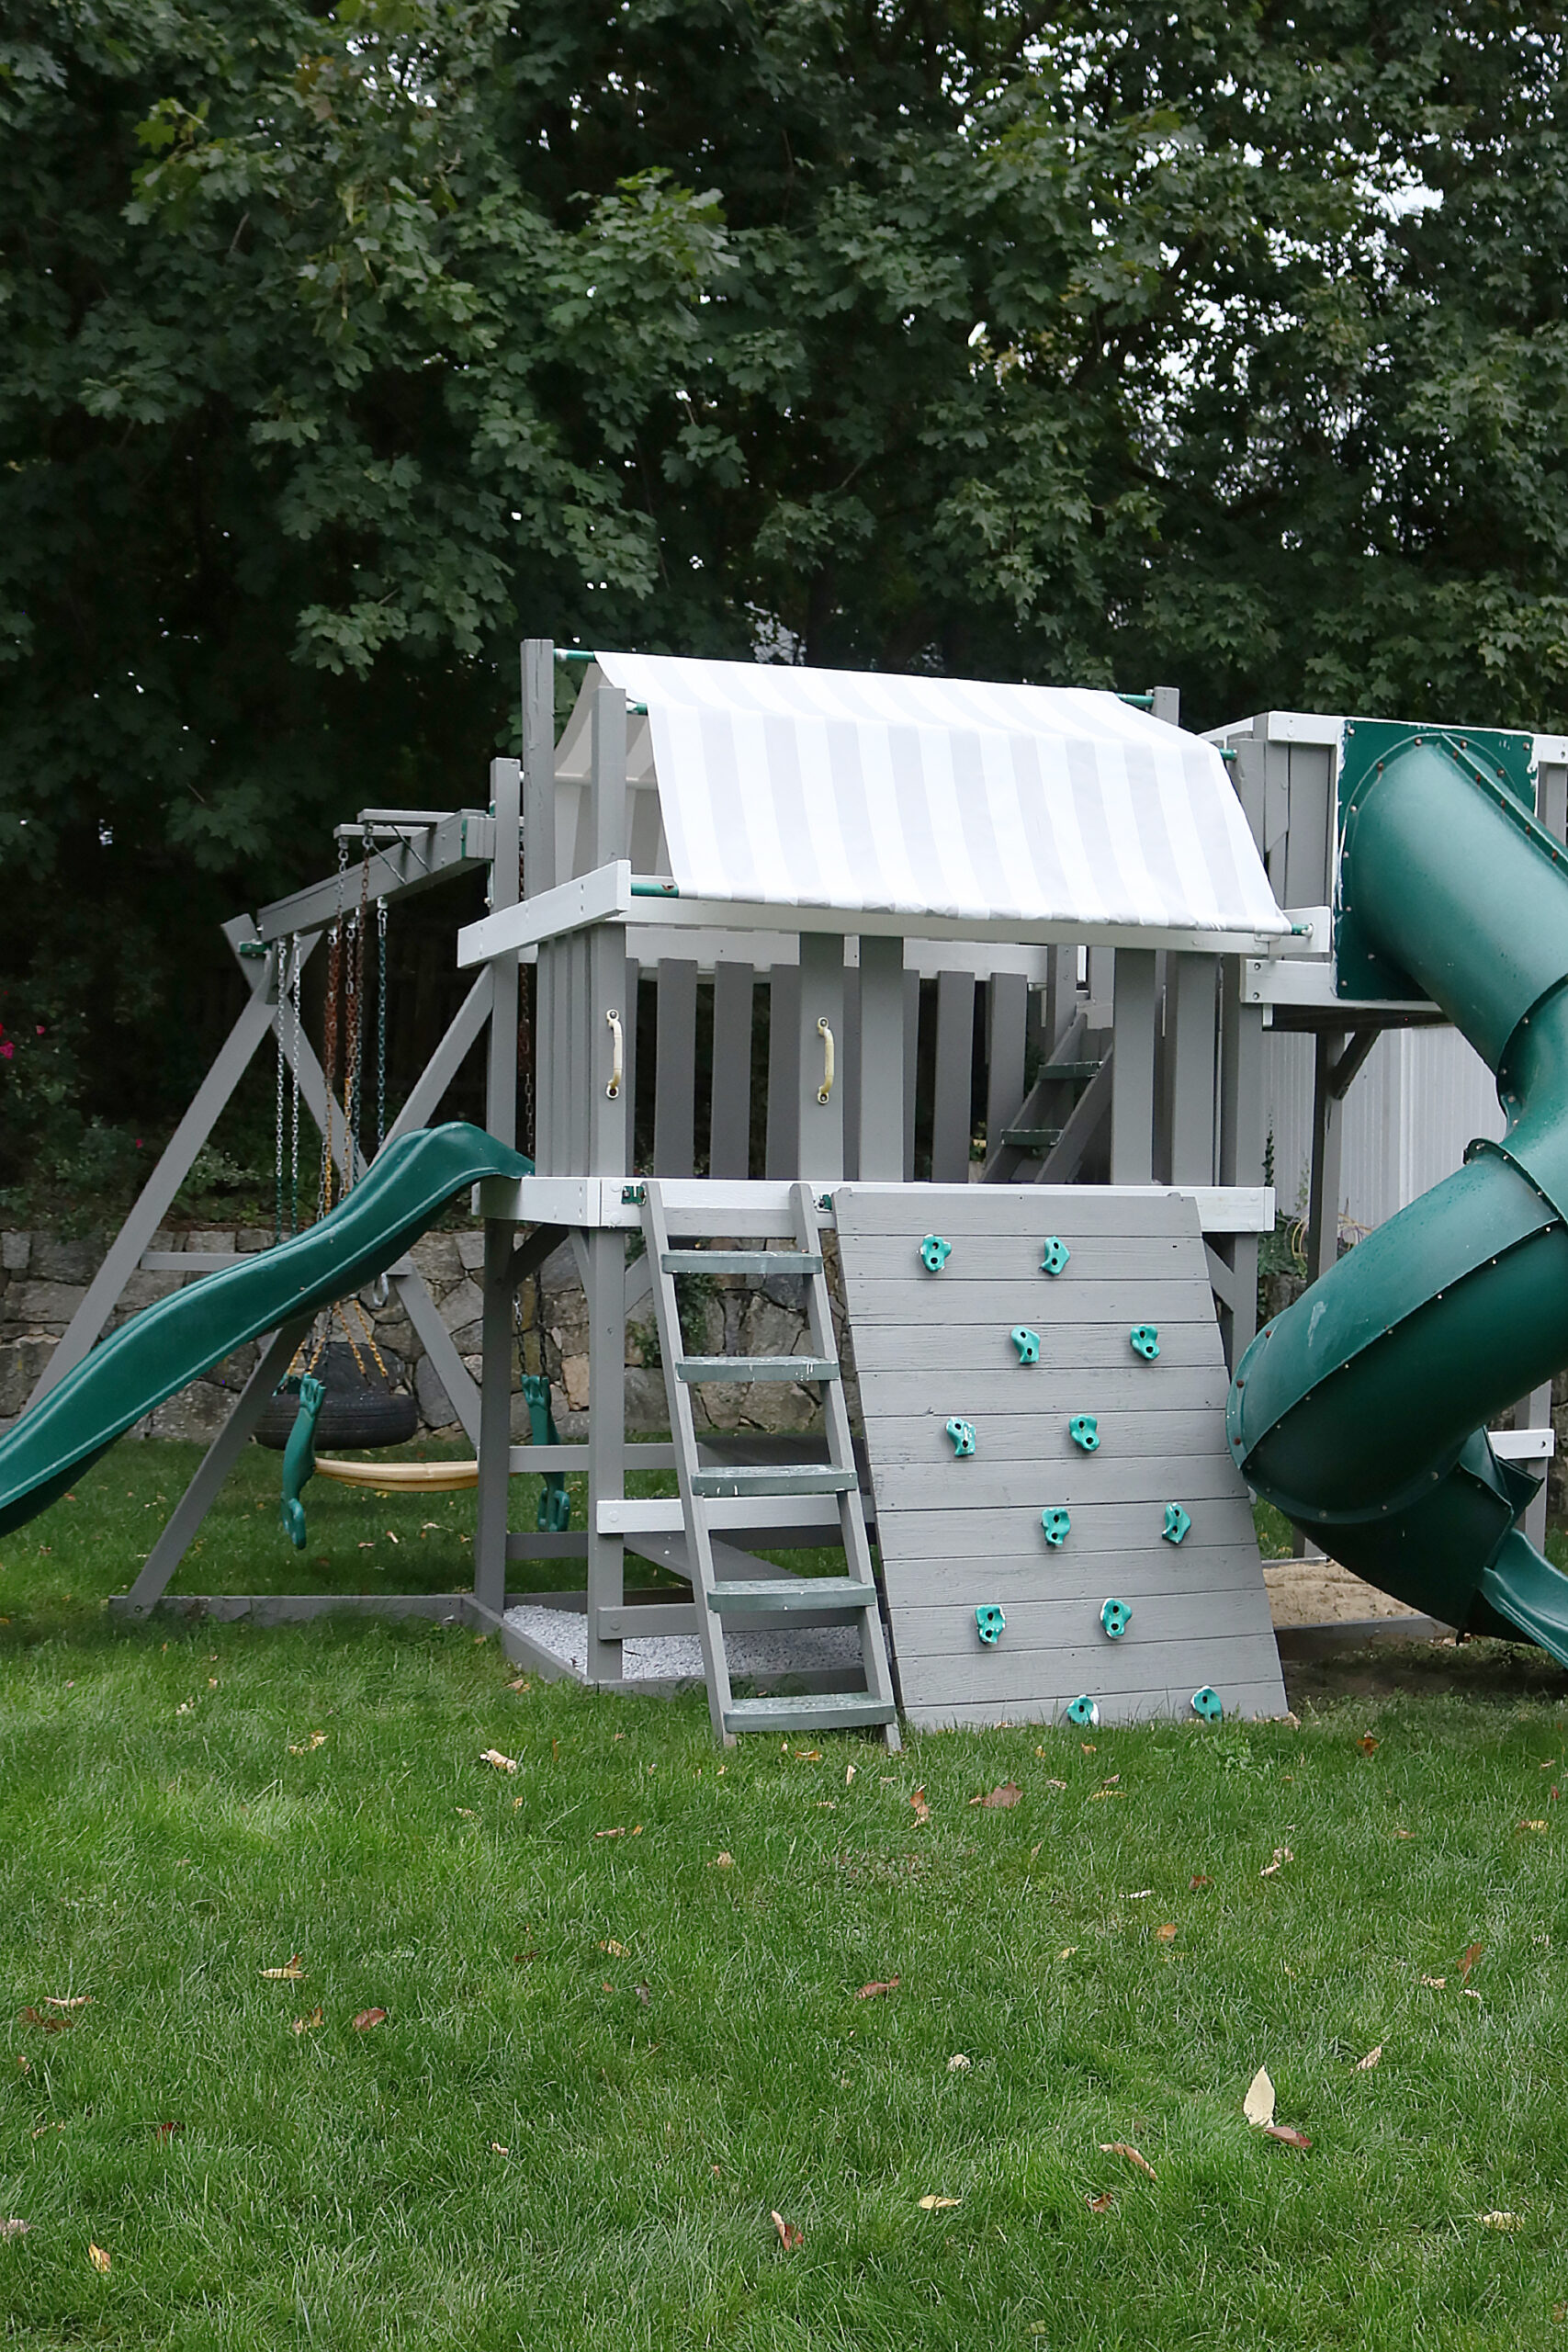 Taking our playground from drab to fab!  Check the before and afters of our backyard playset makeover while on a tight budget || Darling Darleen Top Lifestyle CT Blogger #darlingdblog